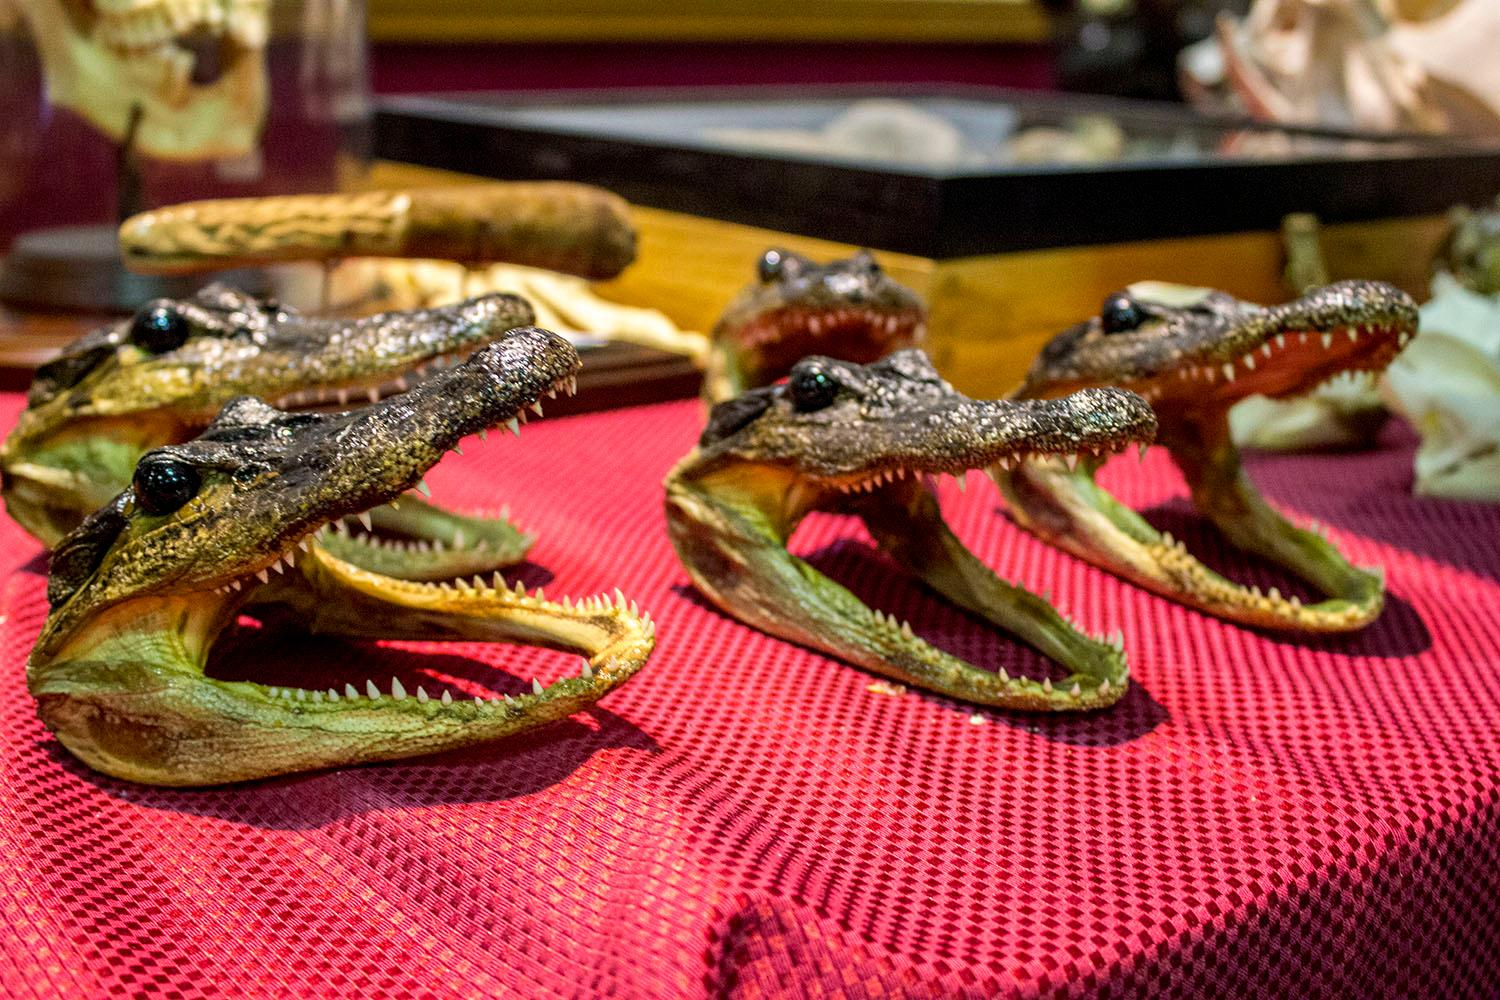 Thousands waited in line Saturday, Jan. 13, 2018 to enter the Portland Metro Reptile Expo at the Portland Holiday Inn. Vendors from across the Pacific Northwest traveled to Portland to showcase not just reptiles, but insects, arachnids and amphibians as well. Visitors could hold the animals and ask the breeders and vendors questions before making purchases. Photo by Amanda Butt